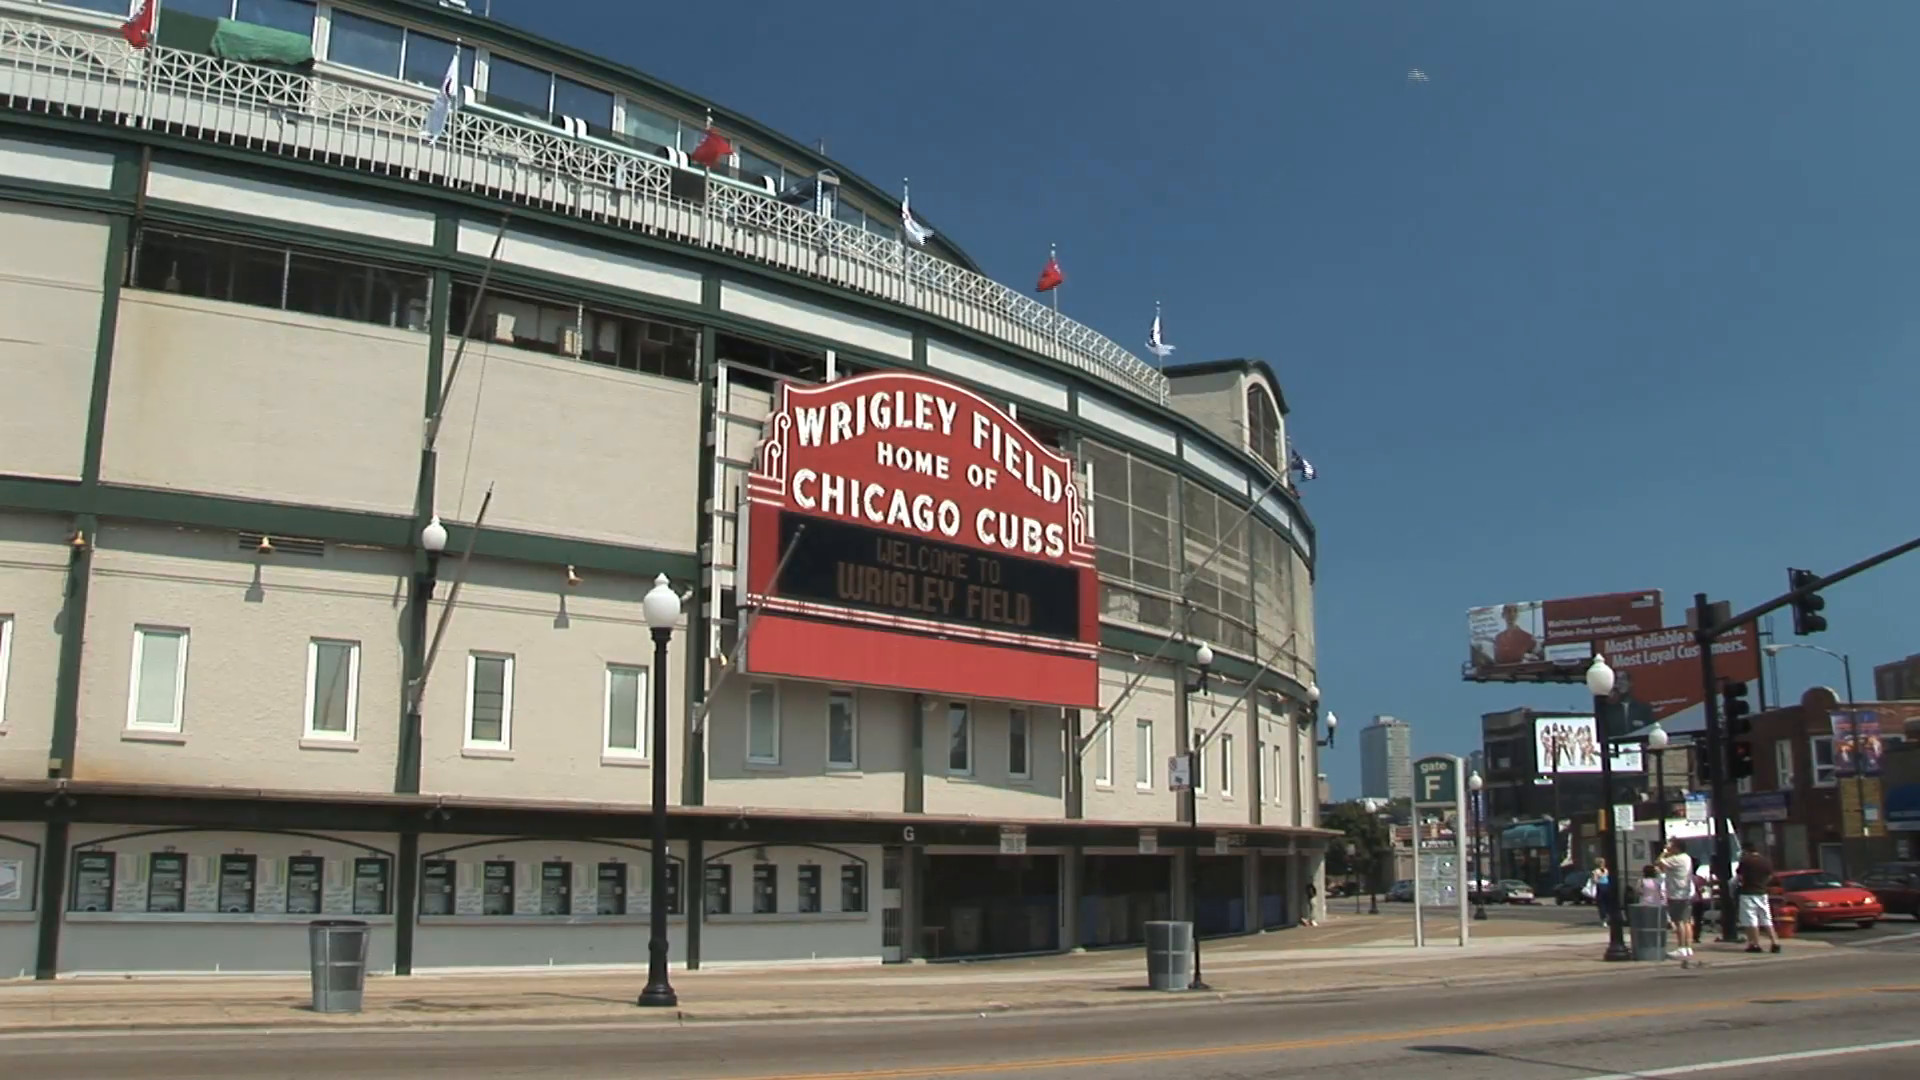 1920x1080 HD ES: Iconic Wrigley Field Baseball Stadium Marquee, Chicago. Filmed using  a Sony EX-3 at 1920*1080 Stock Video Footage - Storyblocks Video